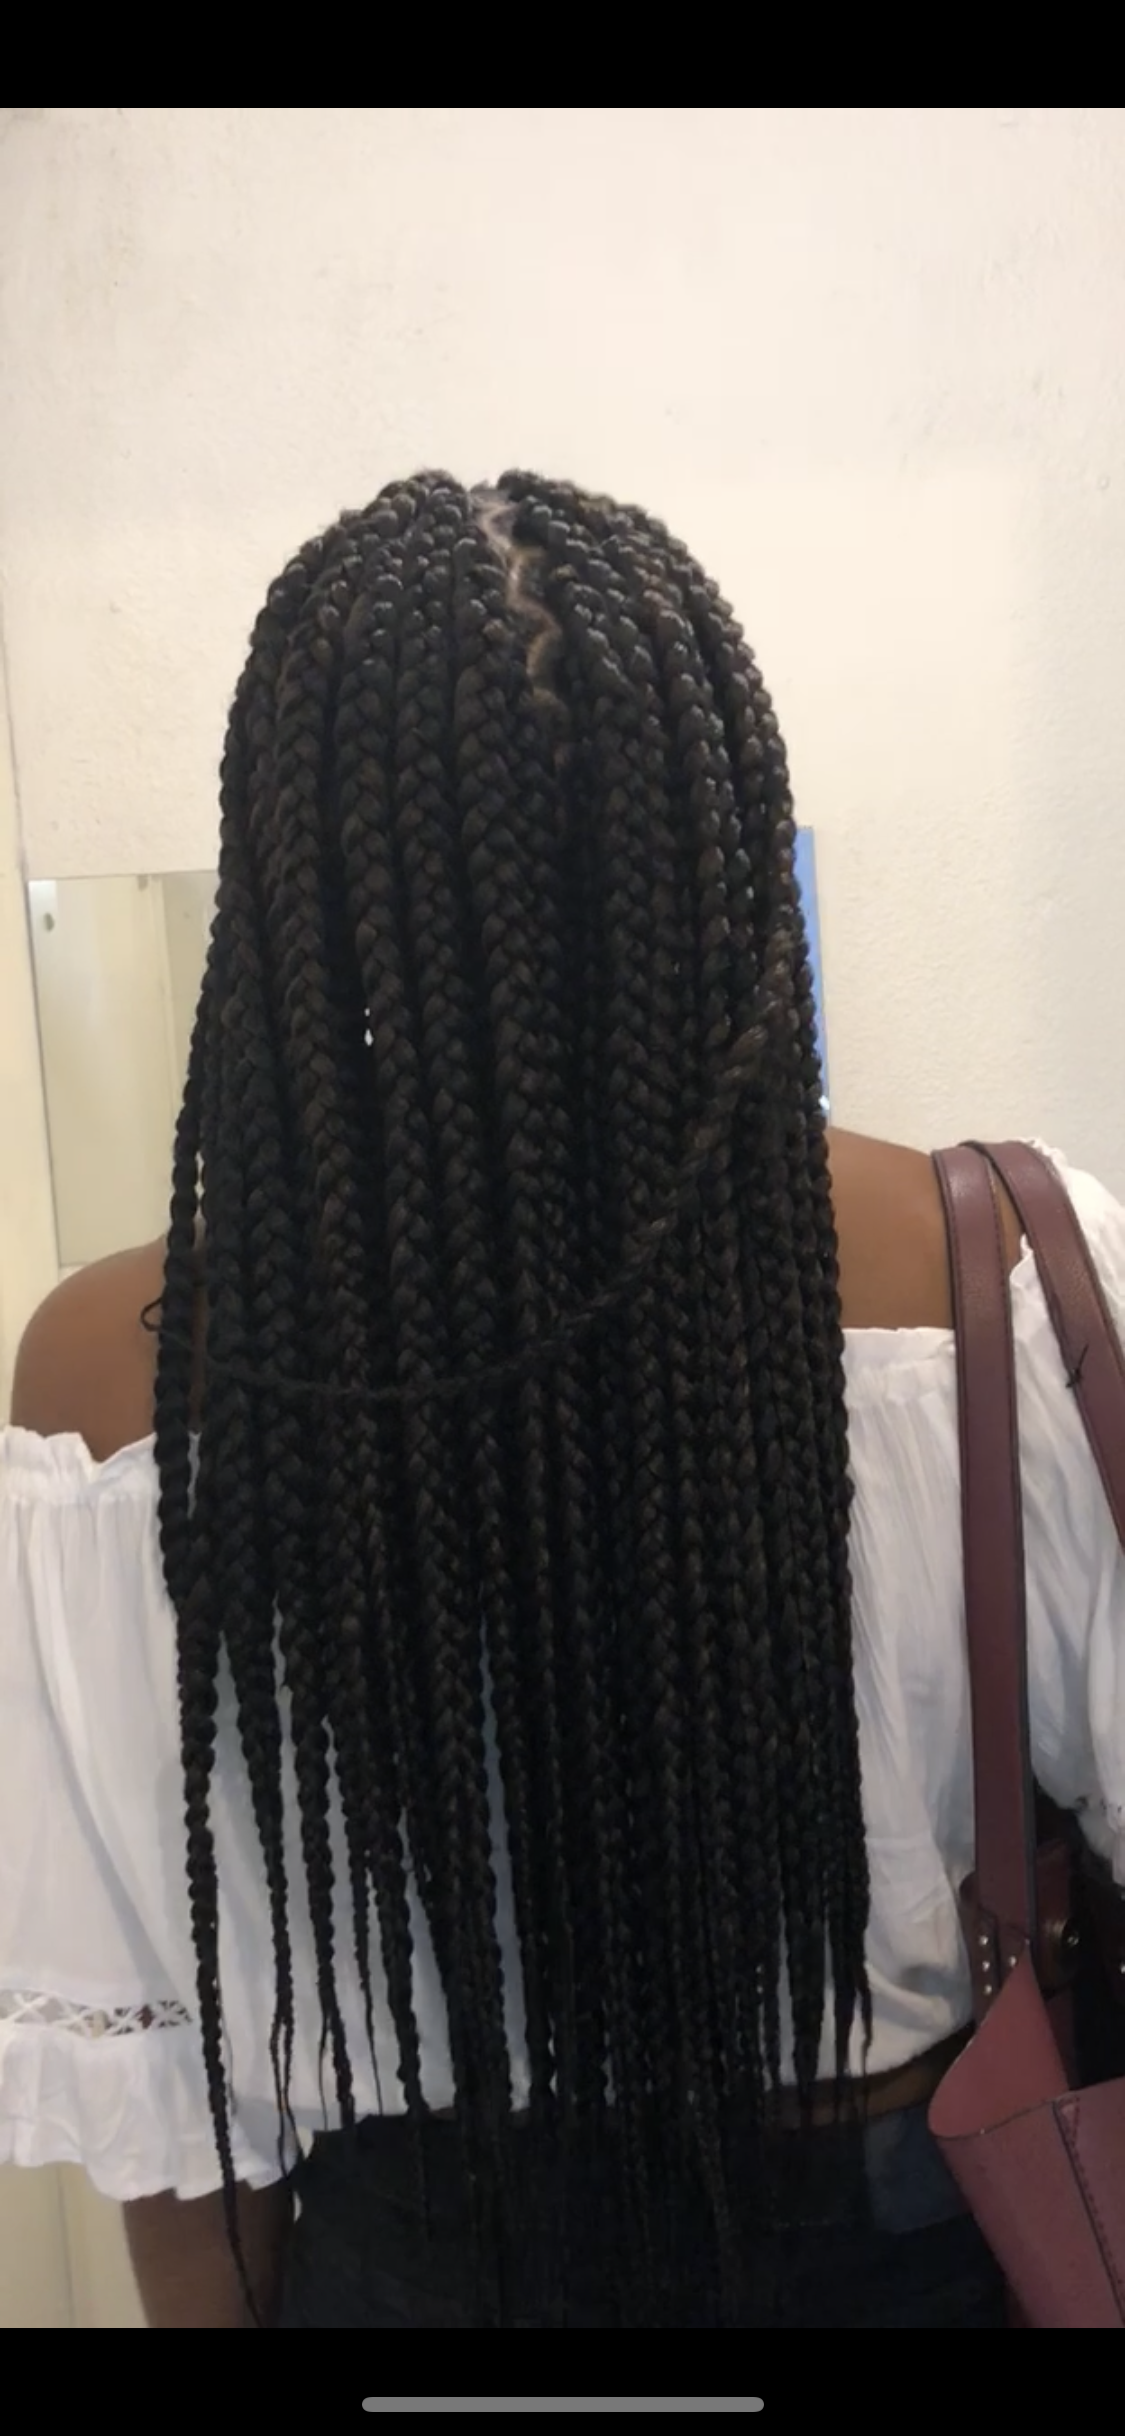 salon de coiffure afro tresse tresses box braids crochet braids vanilles tissages paris 75 77 78 91 92 93 94 95 PEOIKTIH